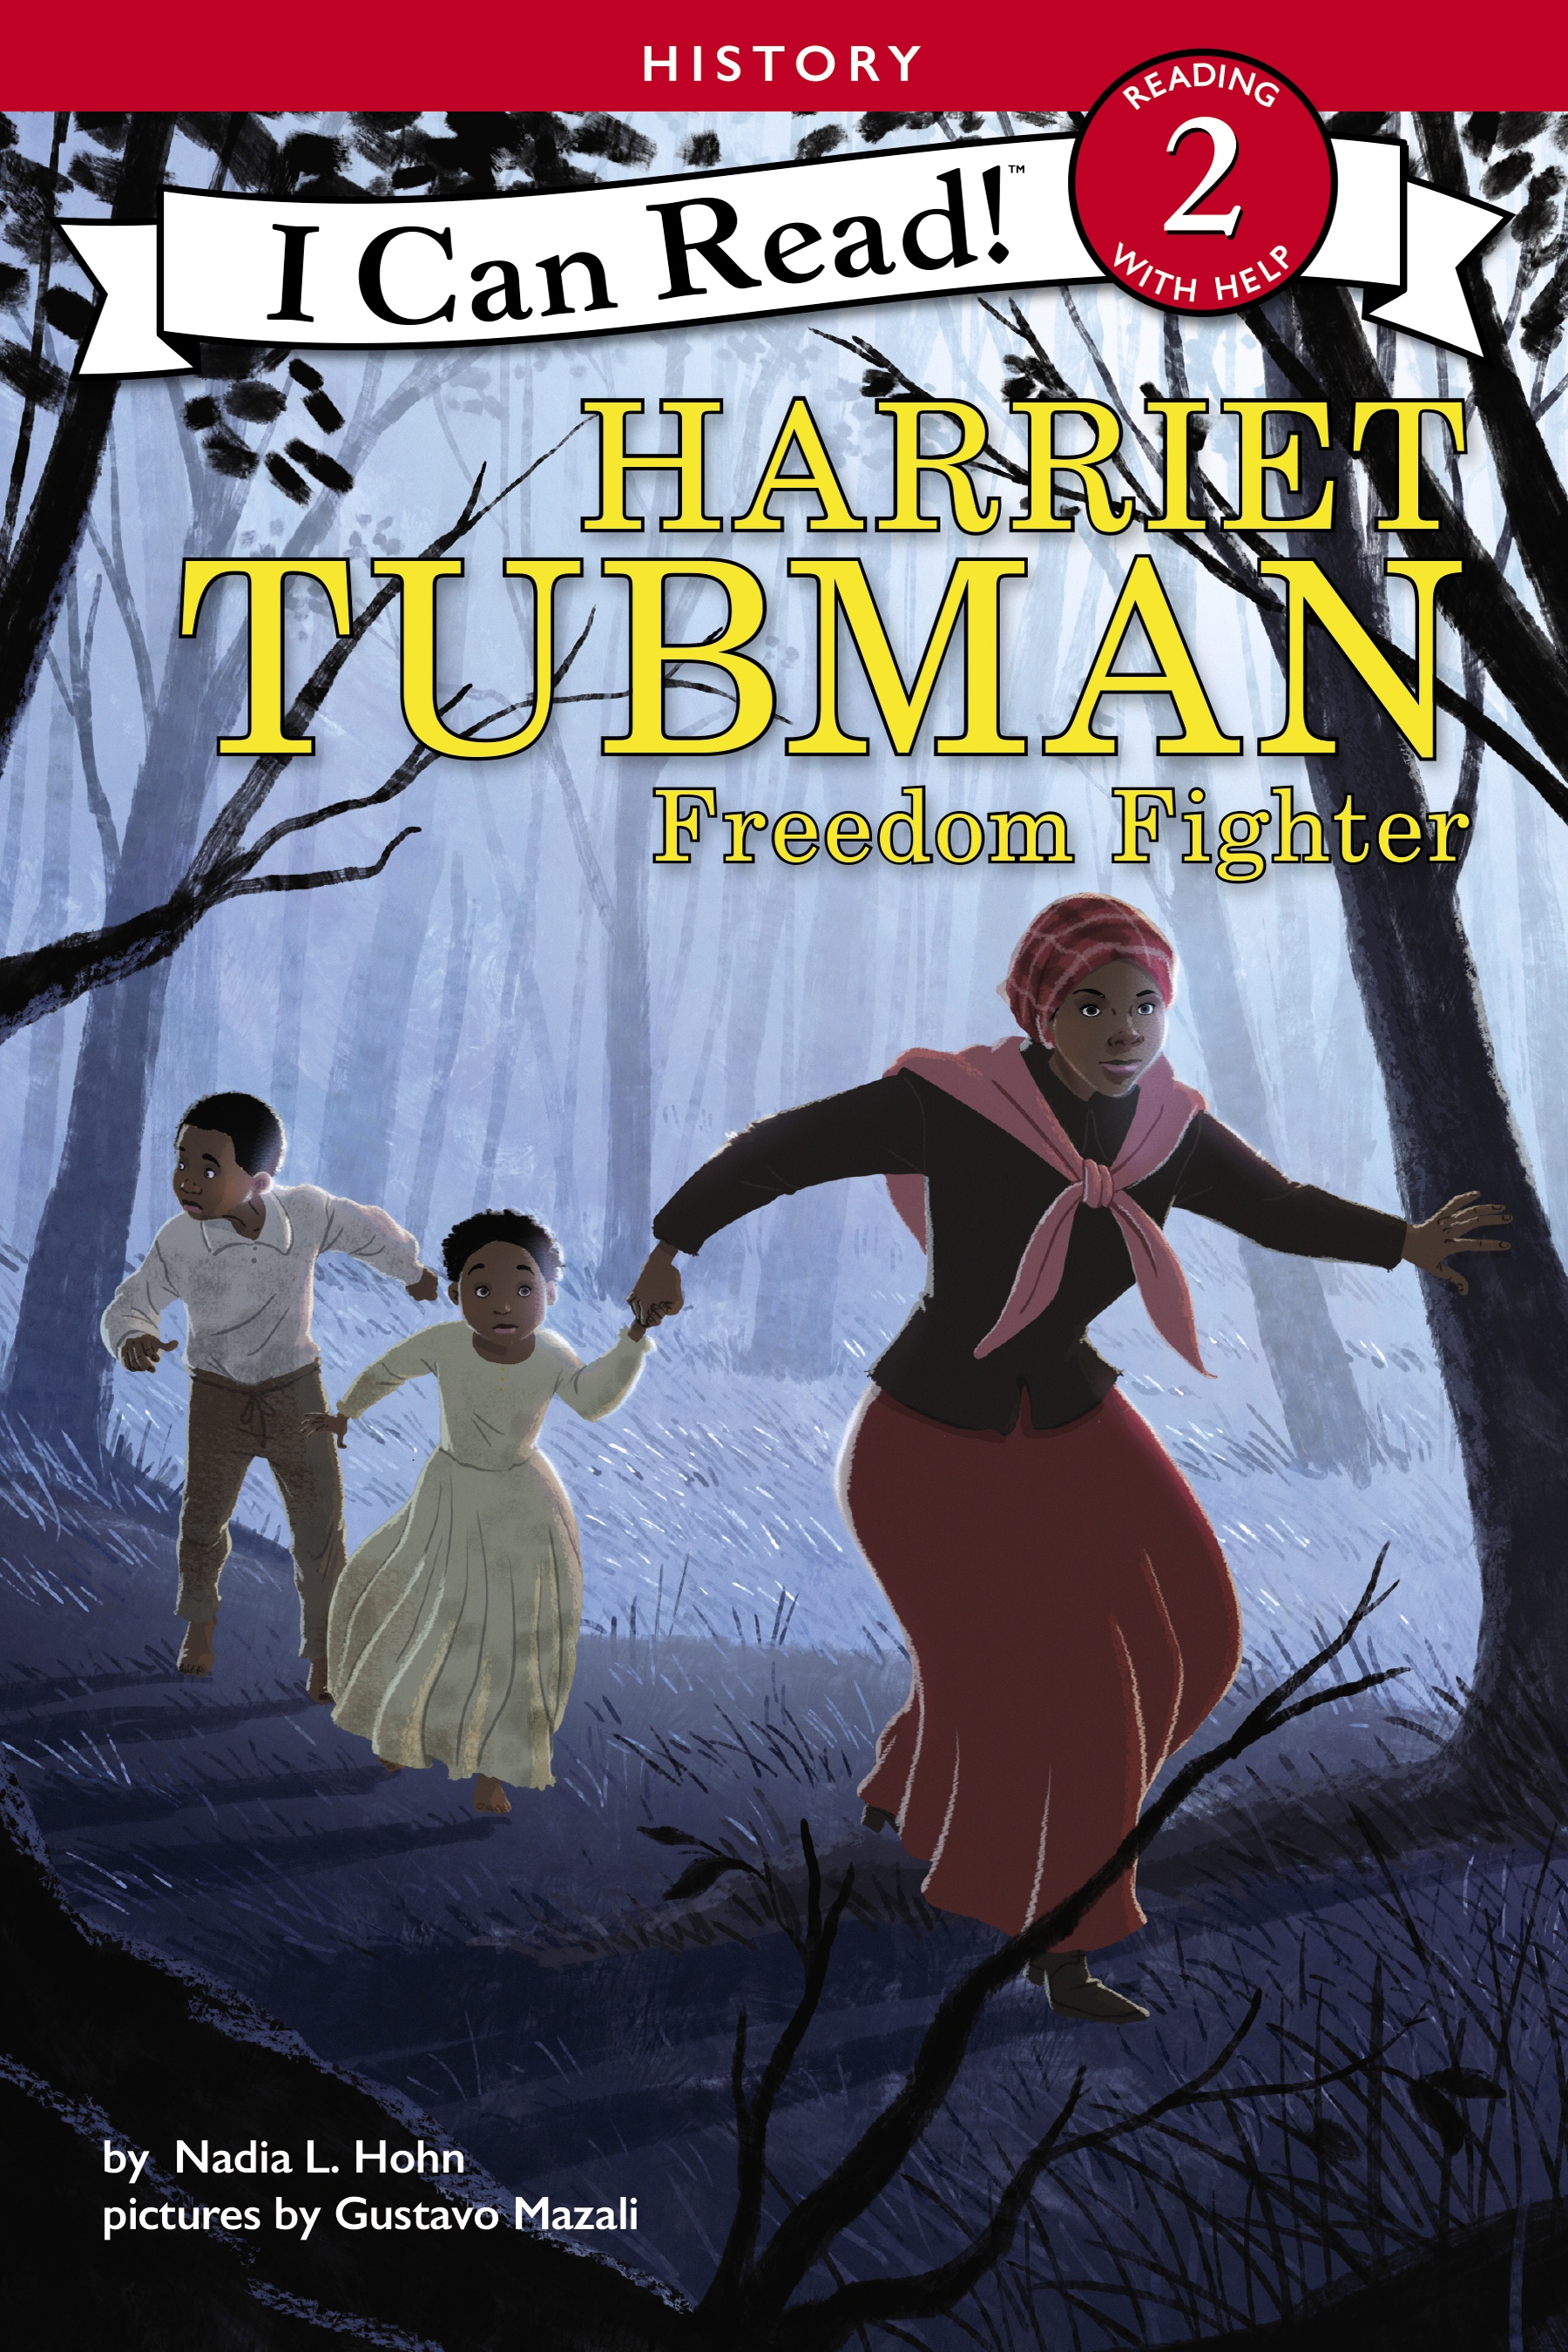 I Can Read: Harriet Tubman